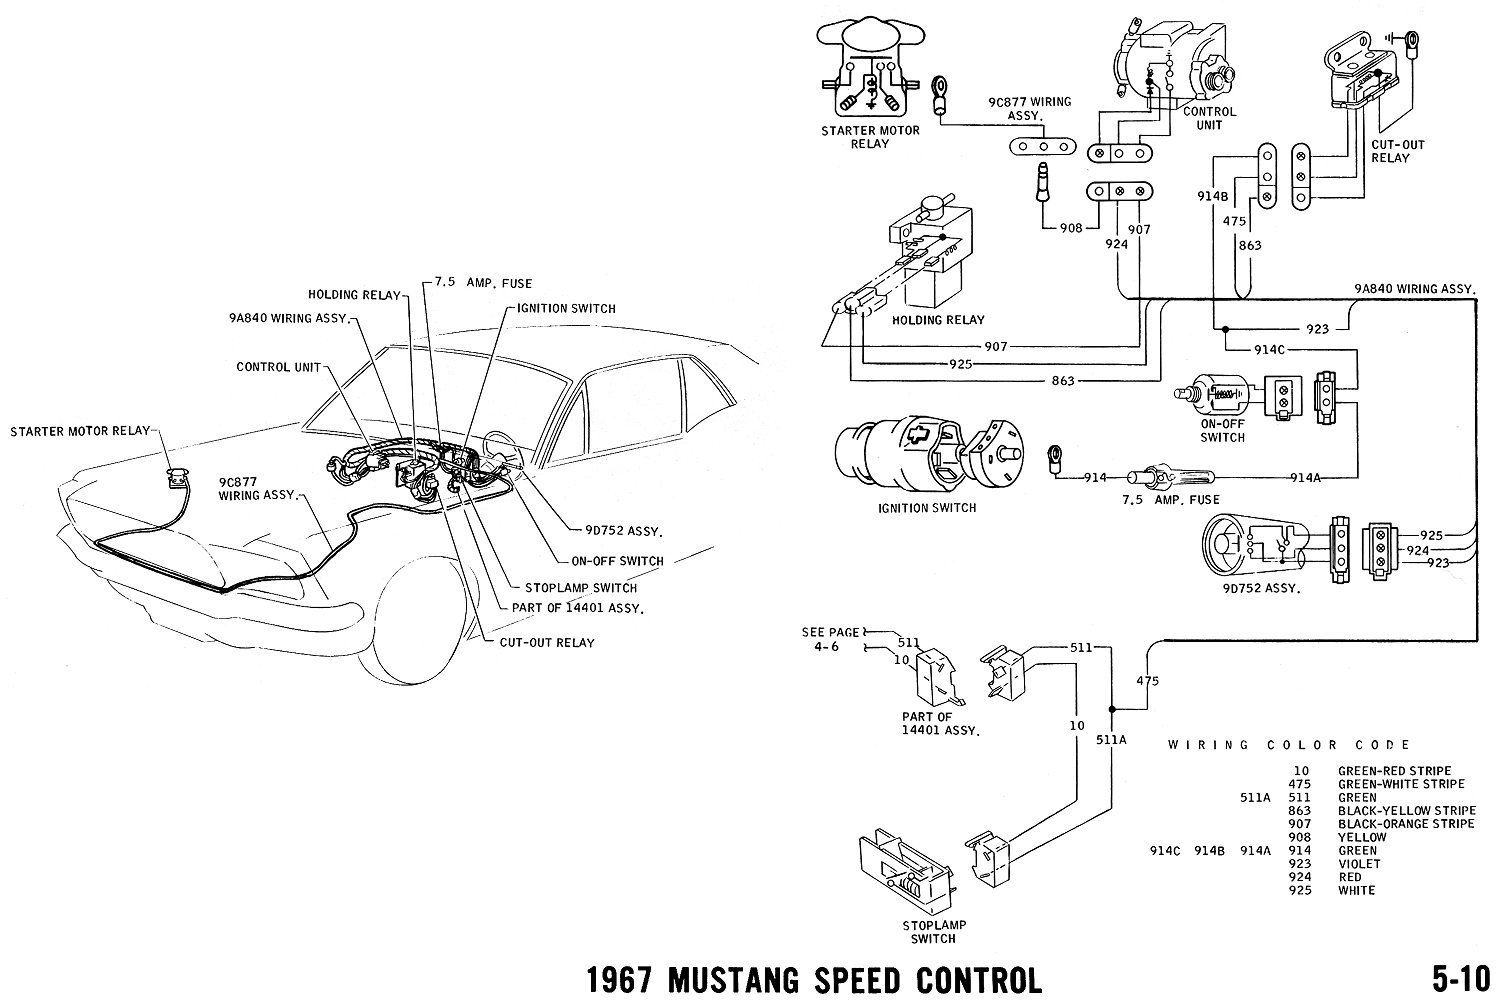 1967 Mustang Wiper Wiring Diagram Free For You Gtx Detailed Rh 9 2 Gastspiel Gerhartz De Ford